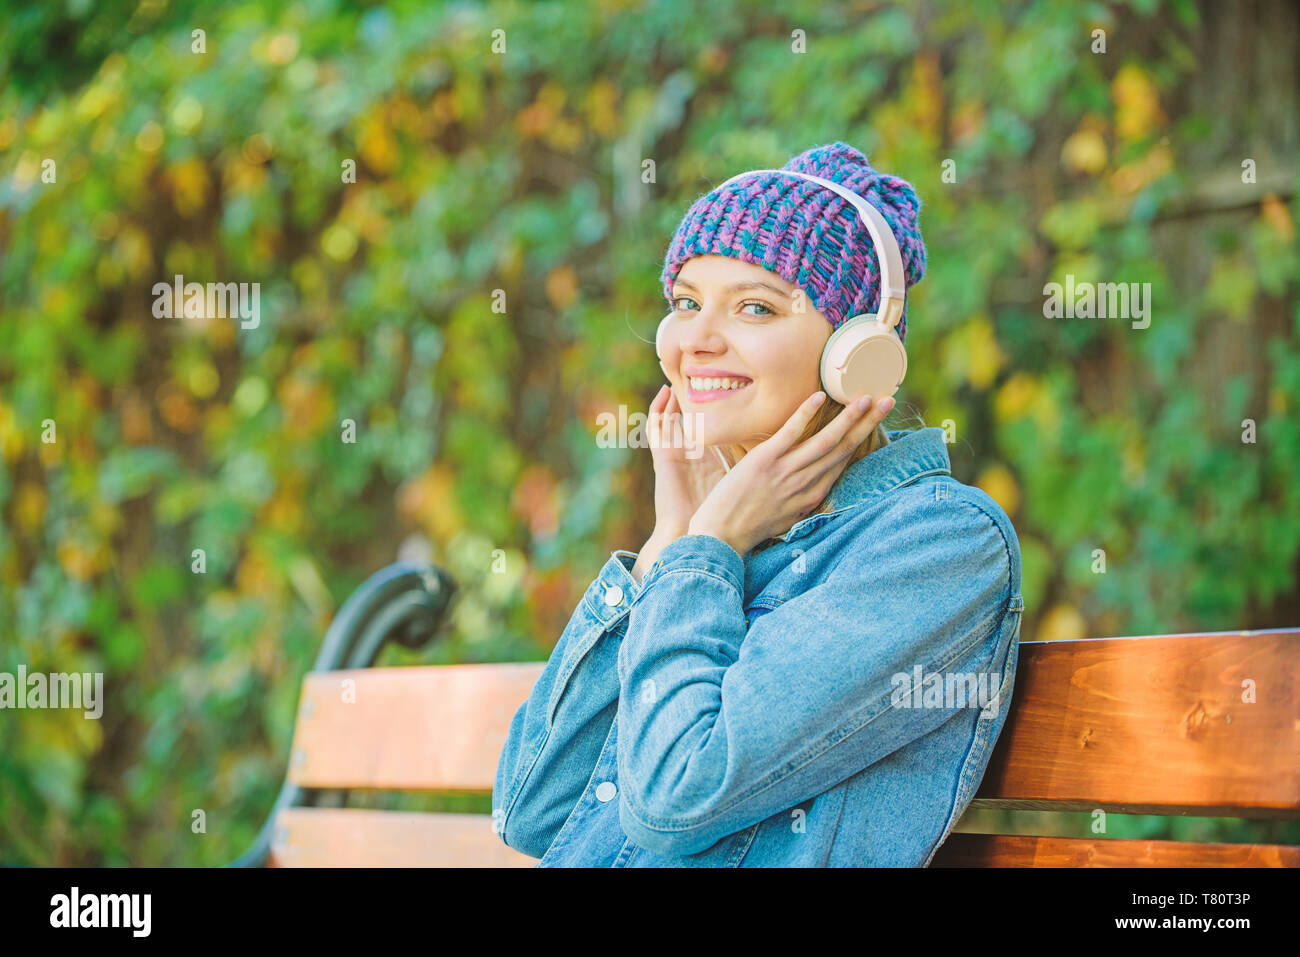 listening music in park. relax in park. hipster girl with mp3 player. modern technology instead of reading. hipster woman in headphones. audio book. style and music. Enjoying her favorite music. - Stock Image